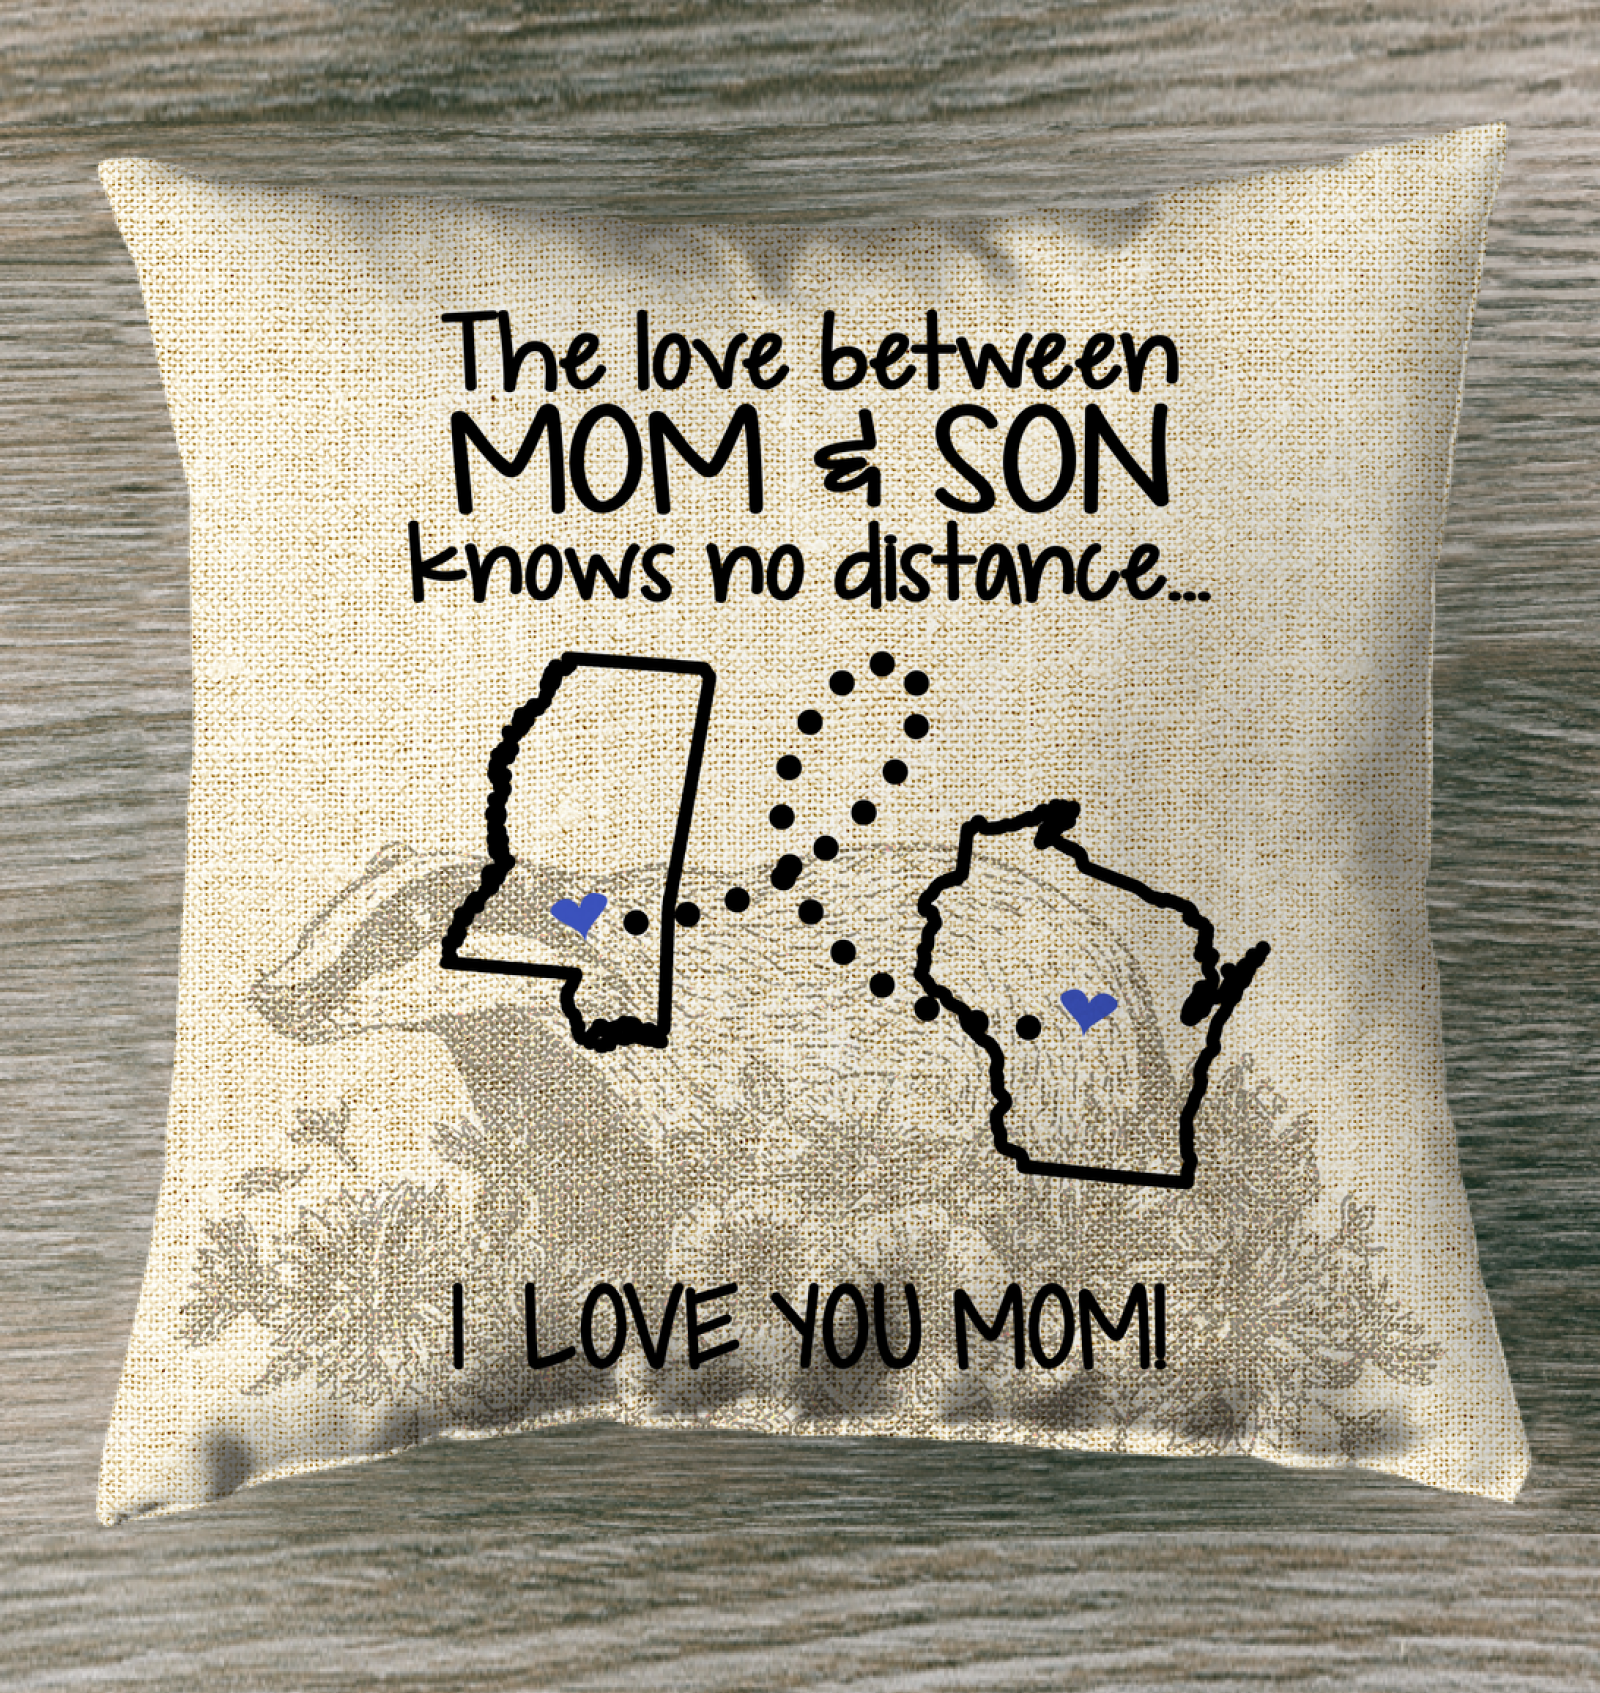 WISCONSIN MISSISSIPPI THE LOVE MOM AND SON KNOWS NO DISTANCE